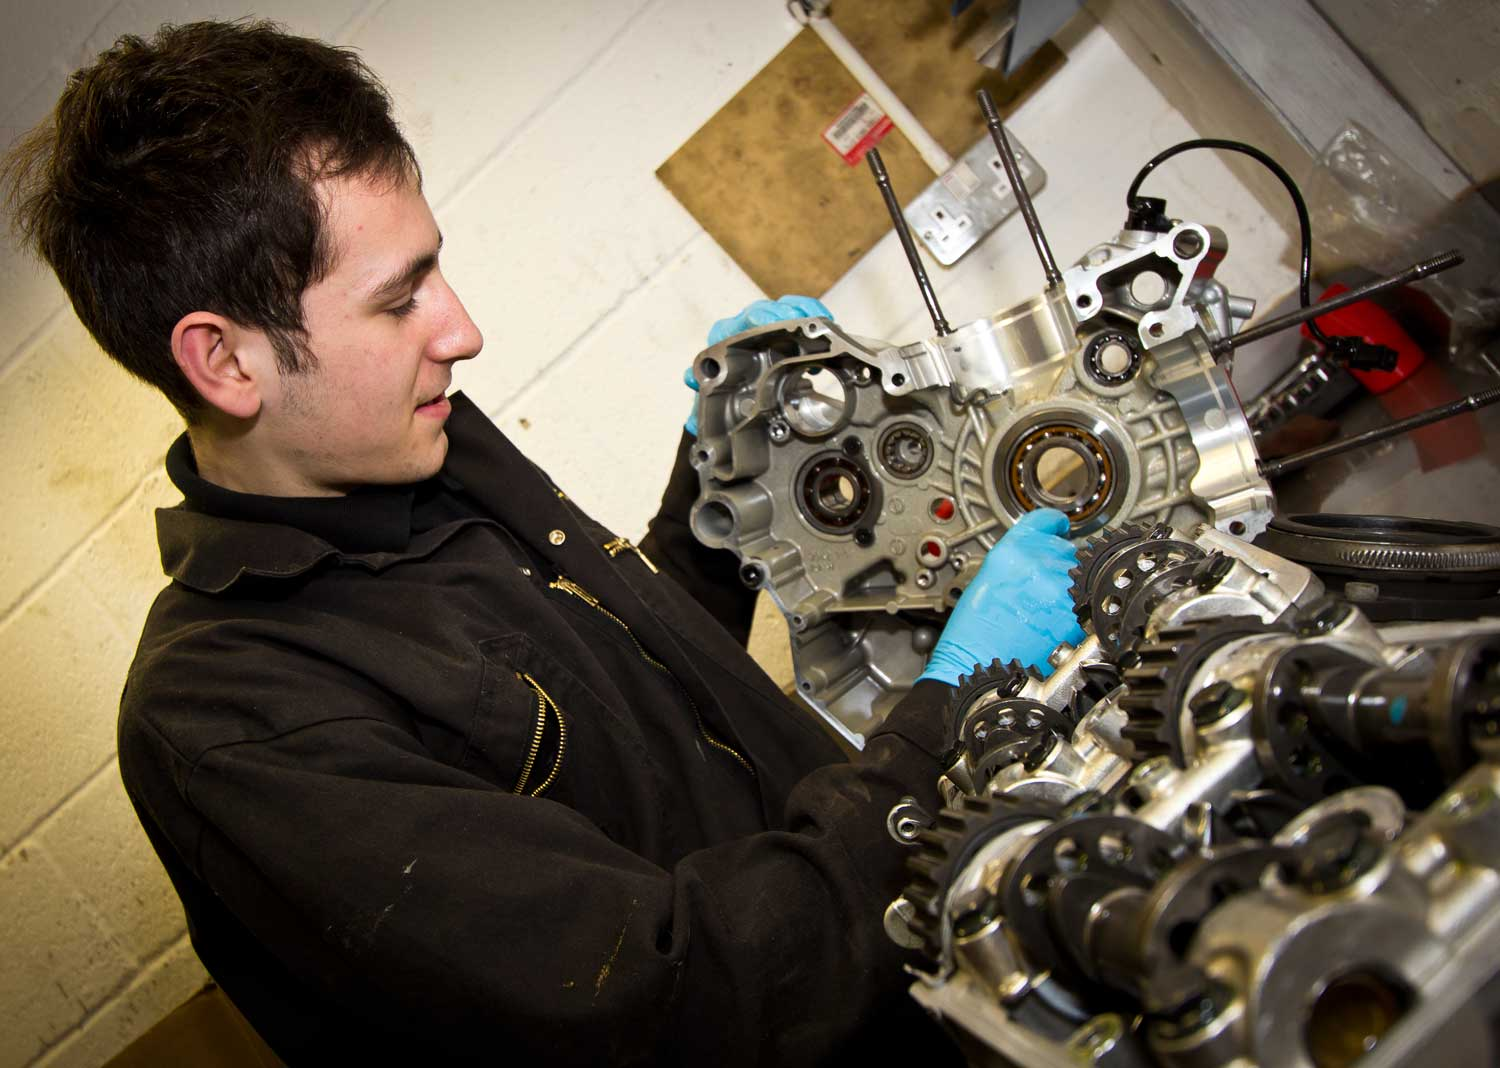 Skilled young mechanics like Andy are a vital part of the future of the motorcycle industry.